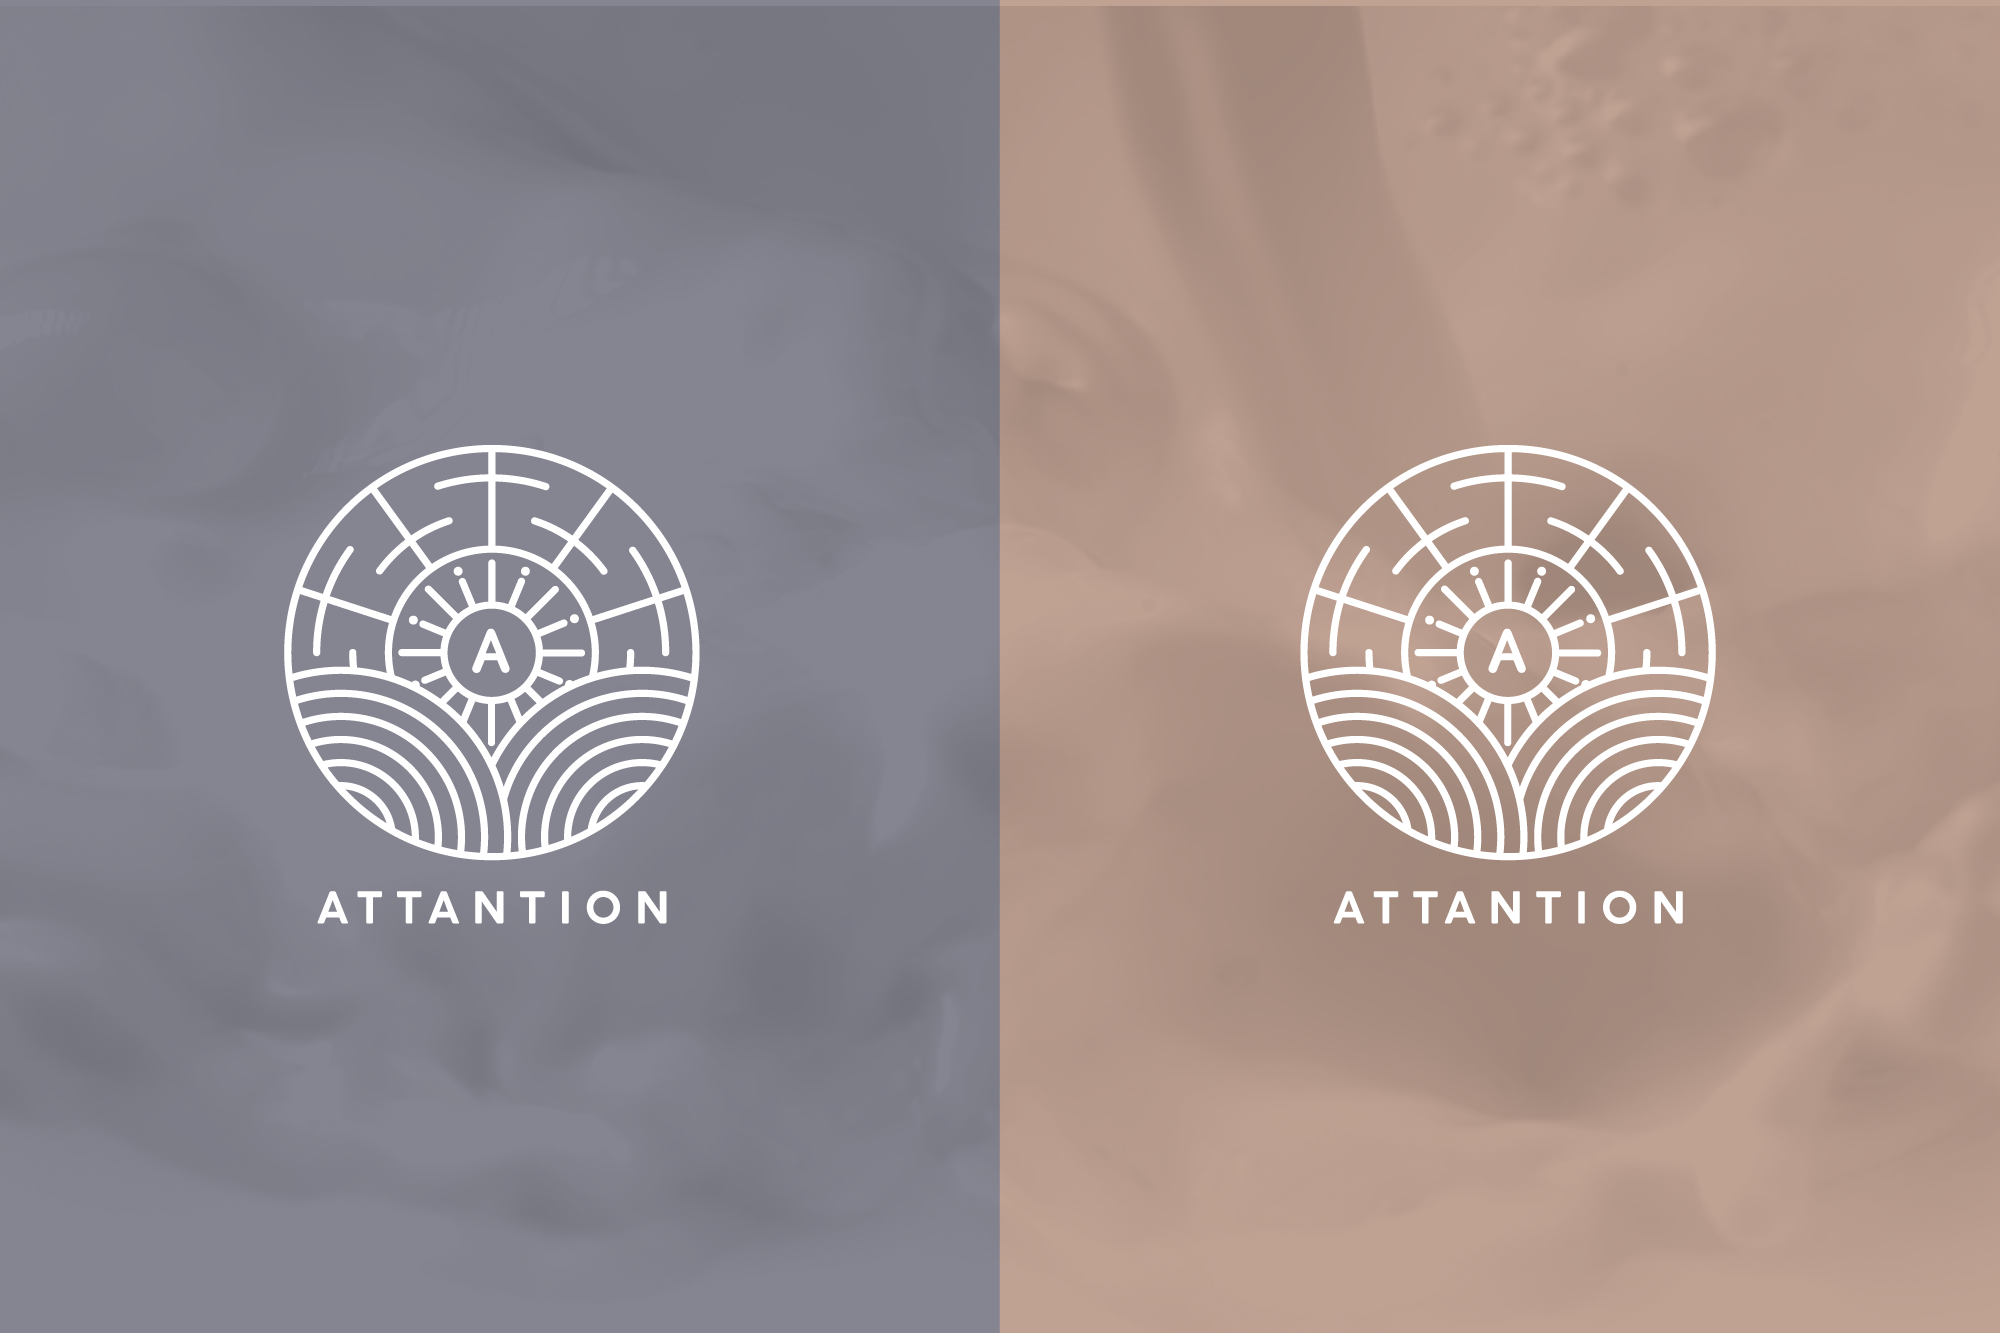 Attantion logo variations